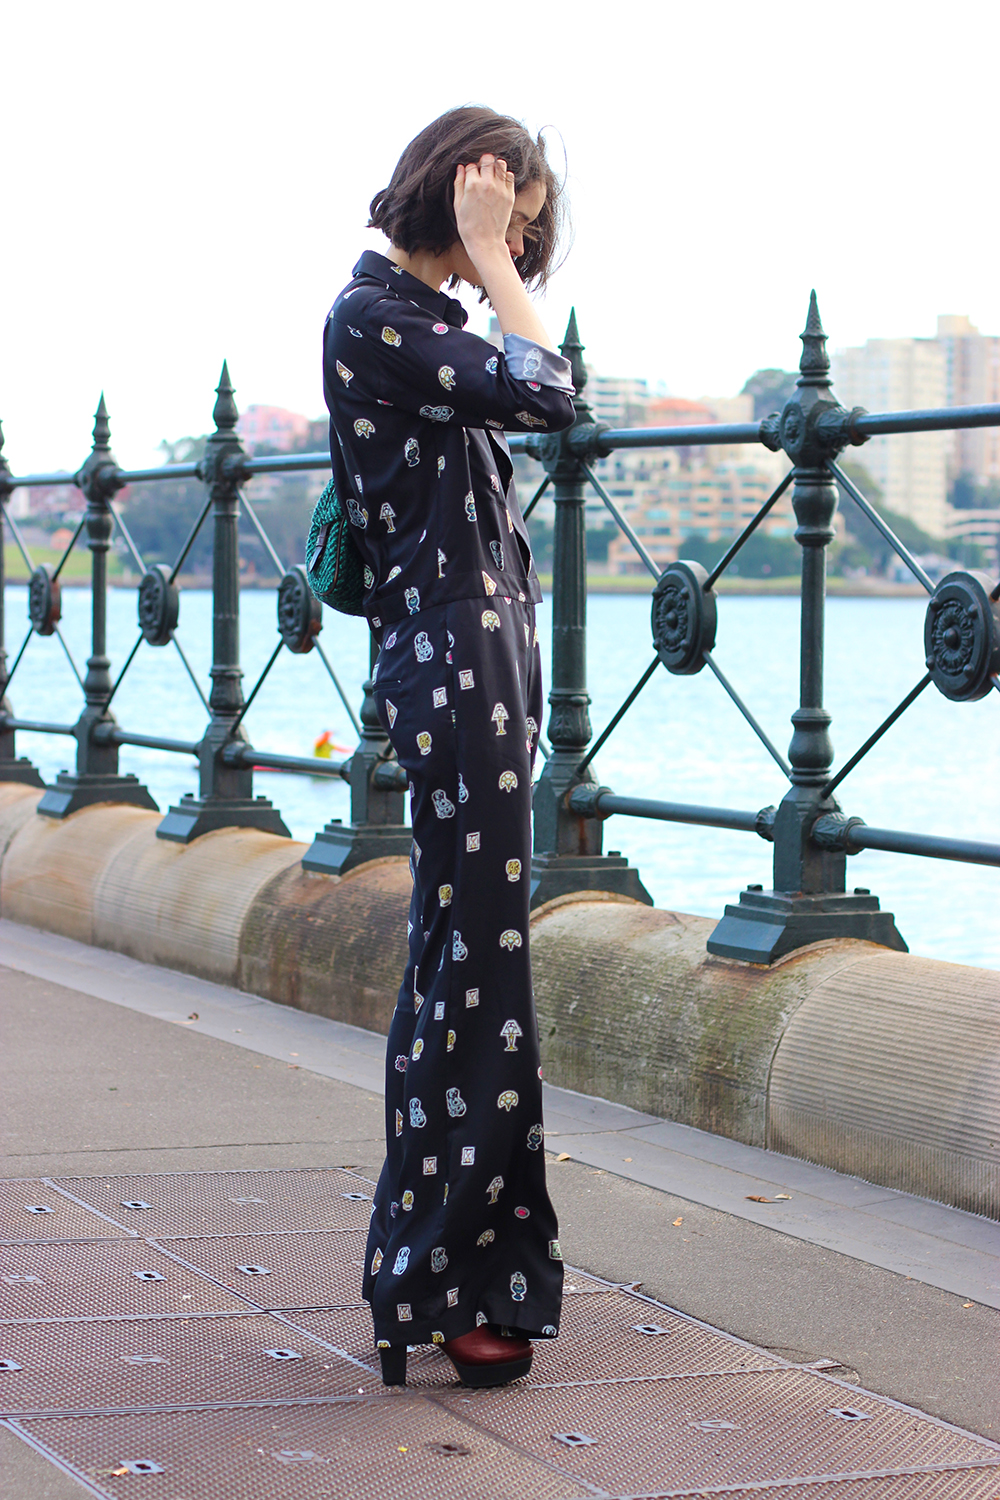 CHLOE C HILL FASHION BLOG   Wearing Issa london printed jumpsuit from the outnet at Dawes Point on Sydney Harbour